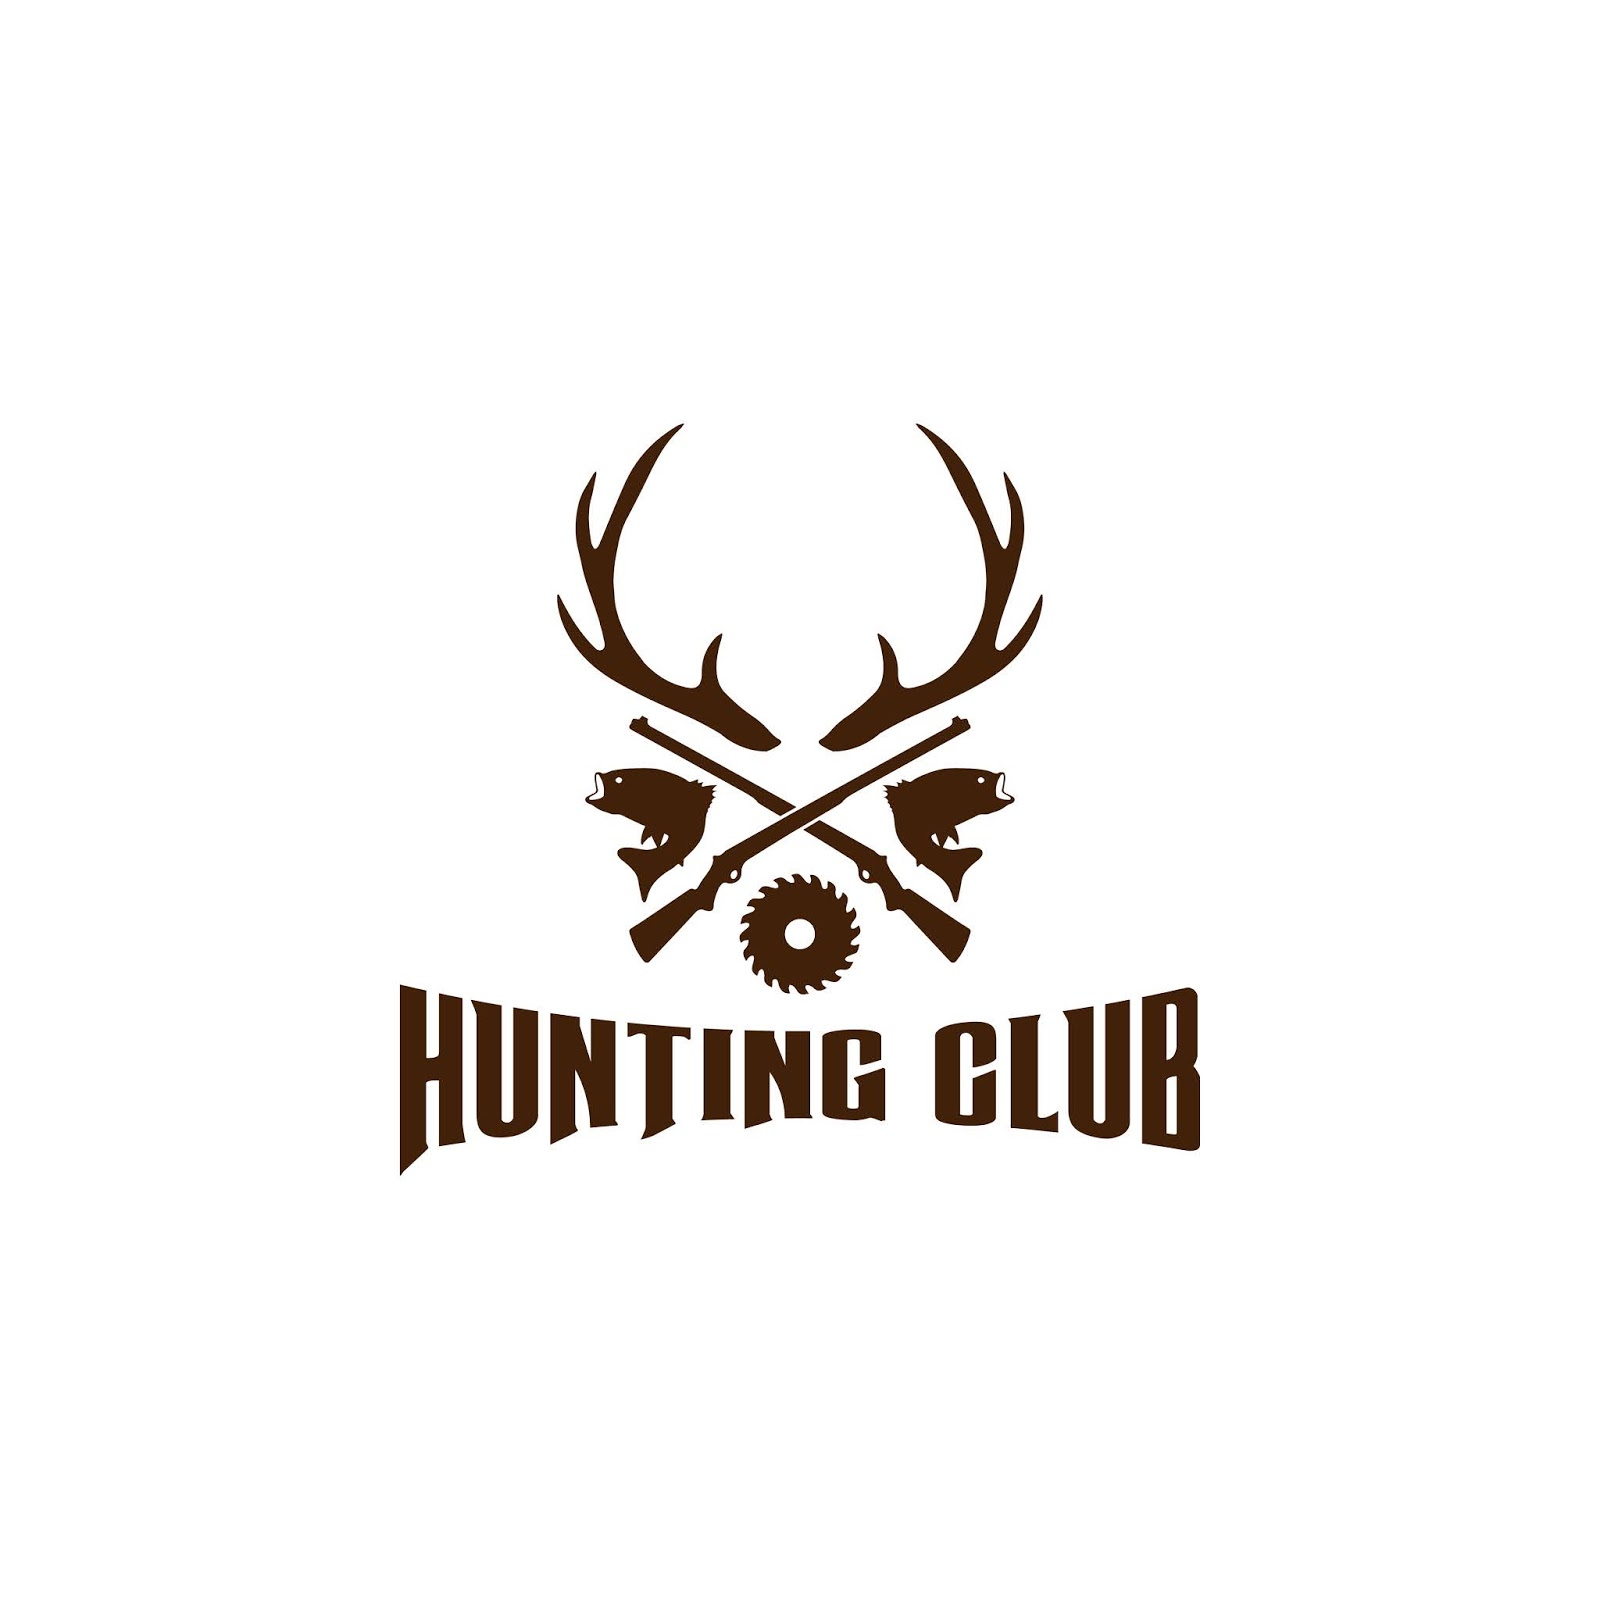 Illustration Hunting Logo Design Template Vector Free Download Vector CDR, AI, EPS and PNG Formats